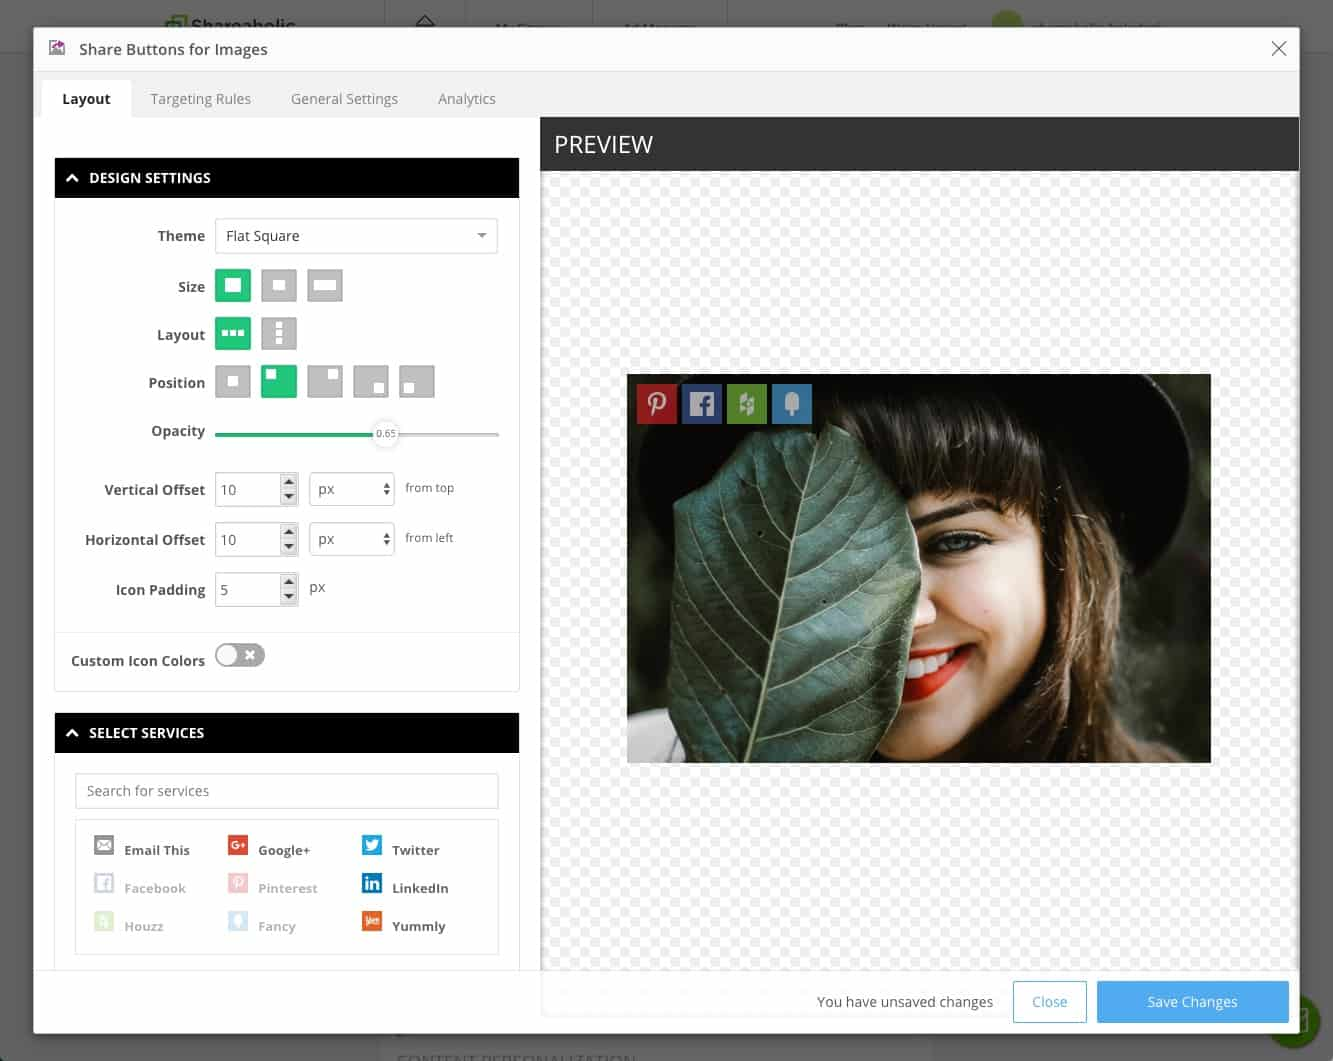 Share Buttons for Images plugin